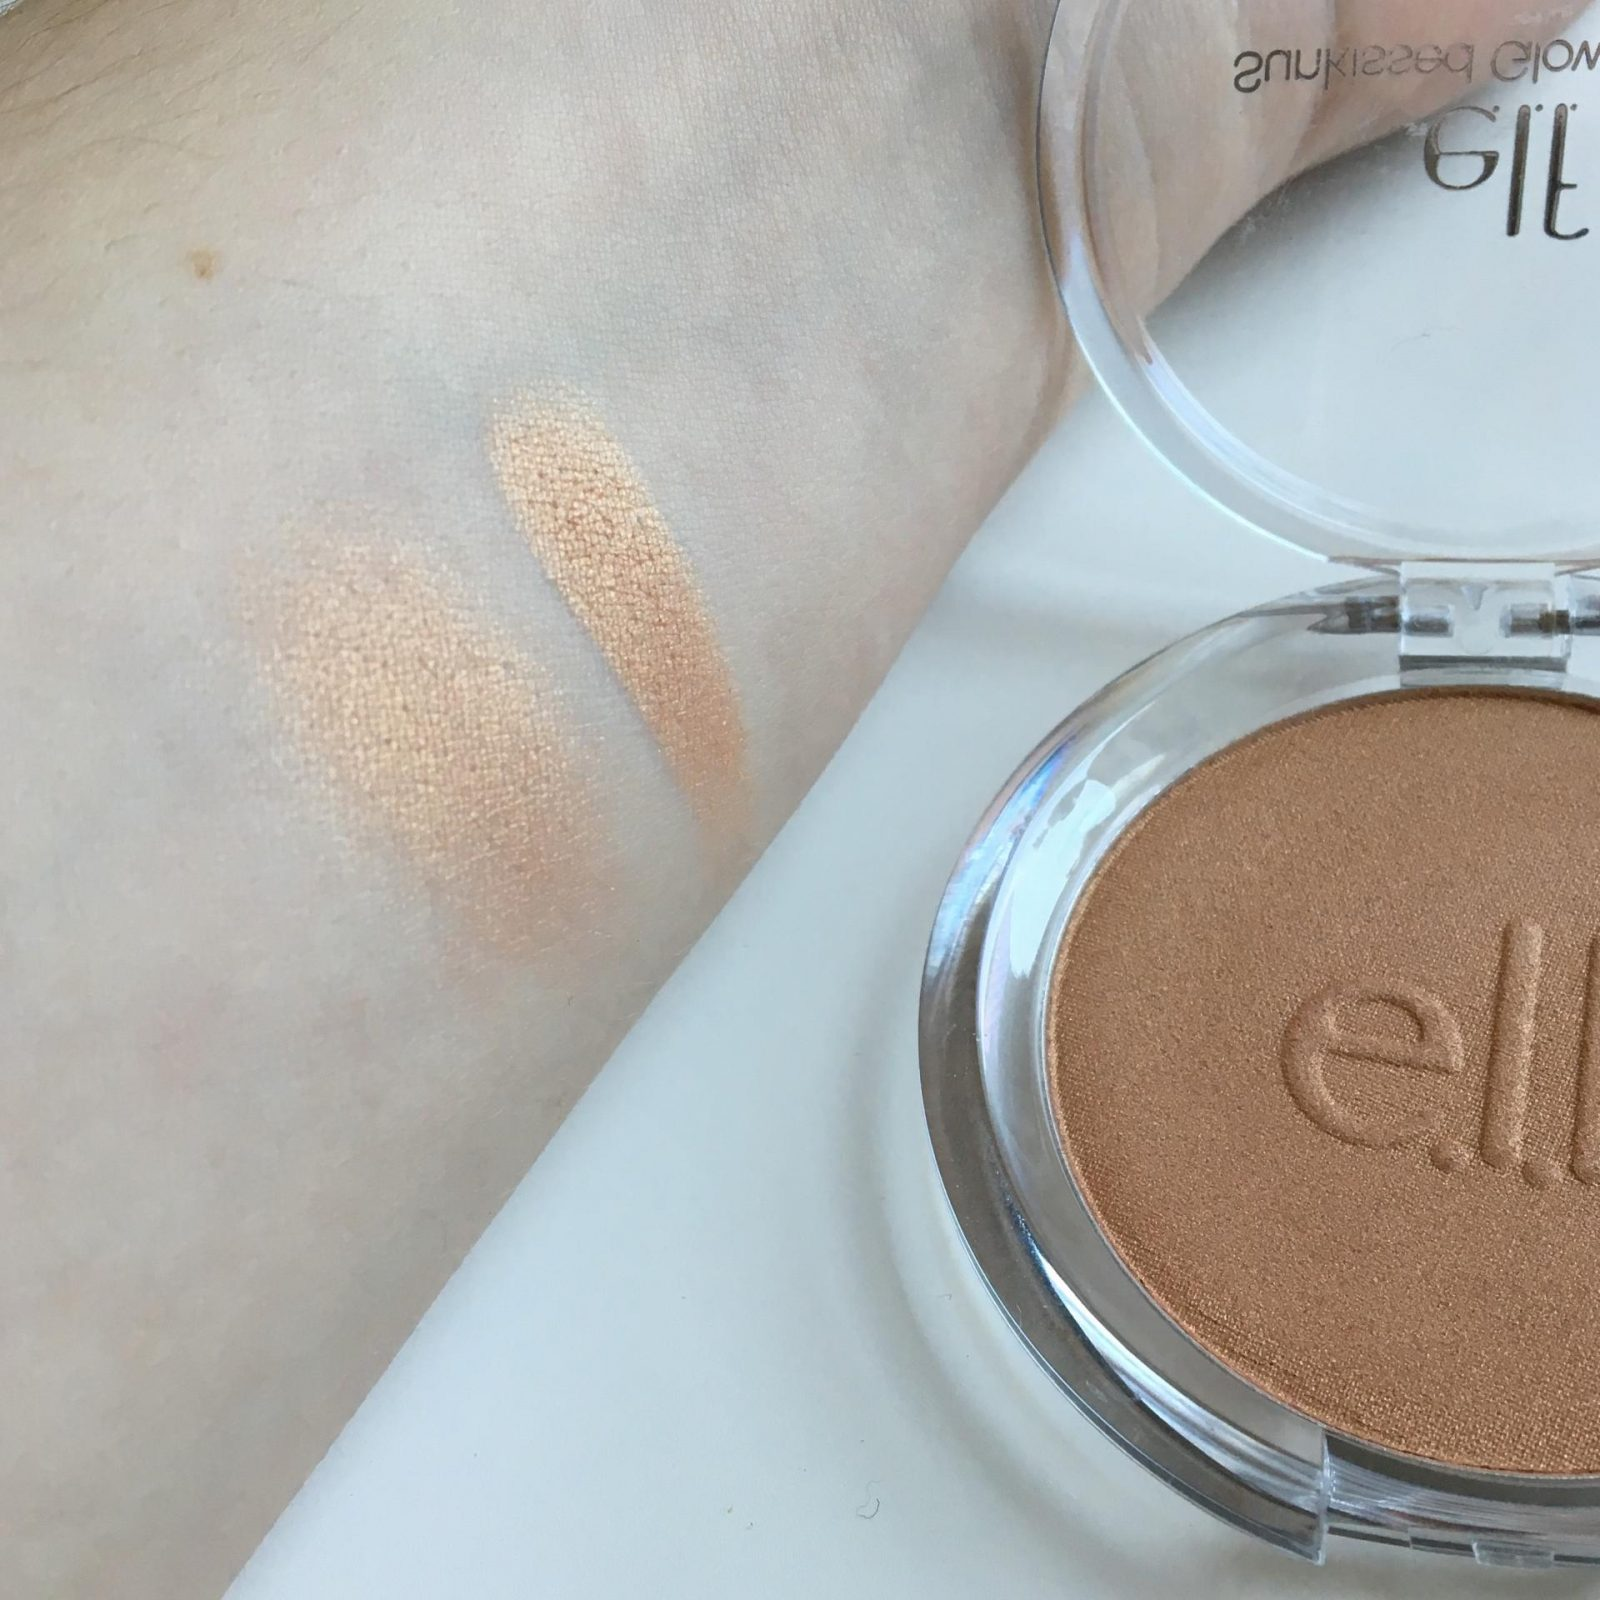 elf Sunkissed Glow Bronzer swatch